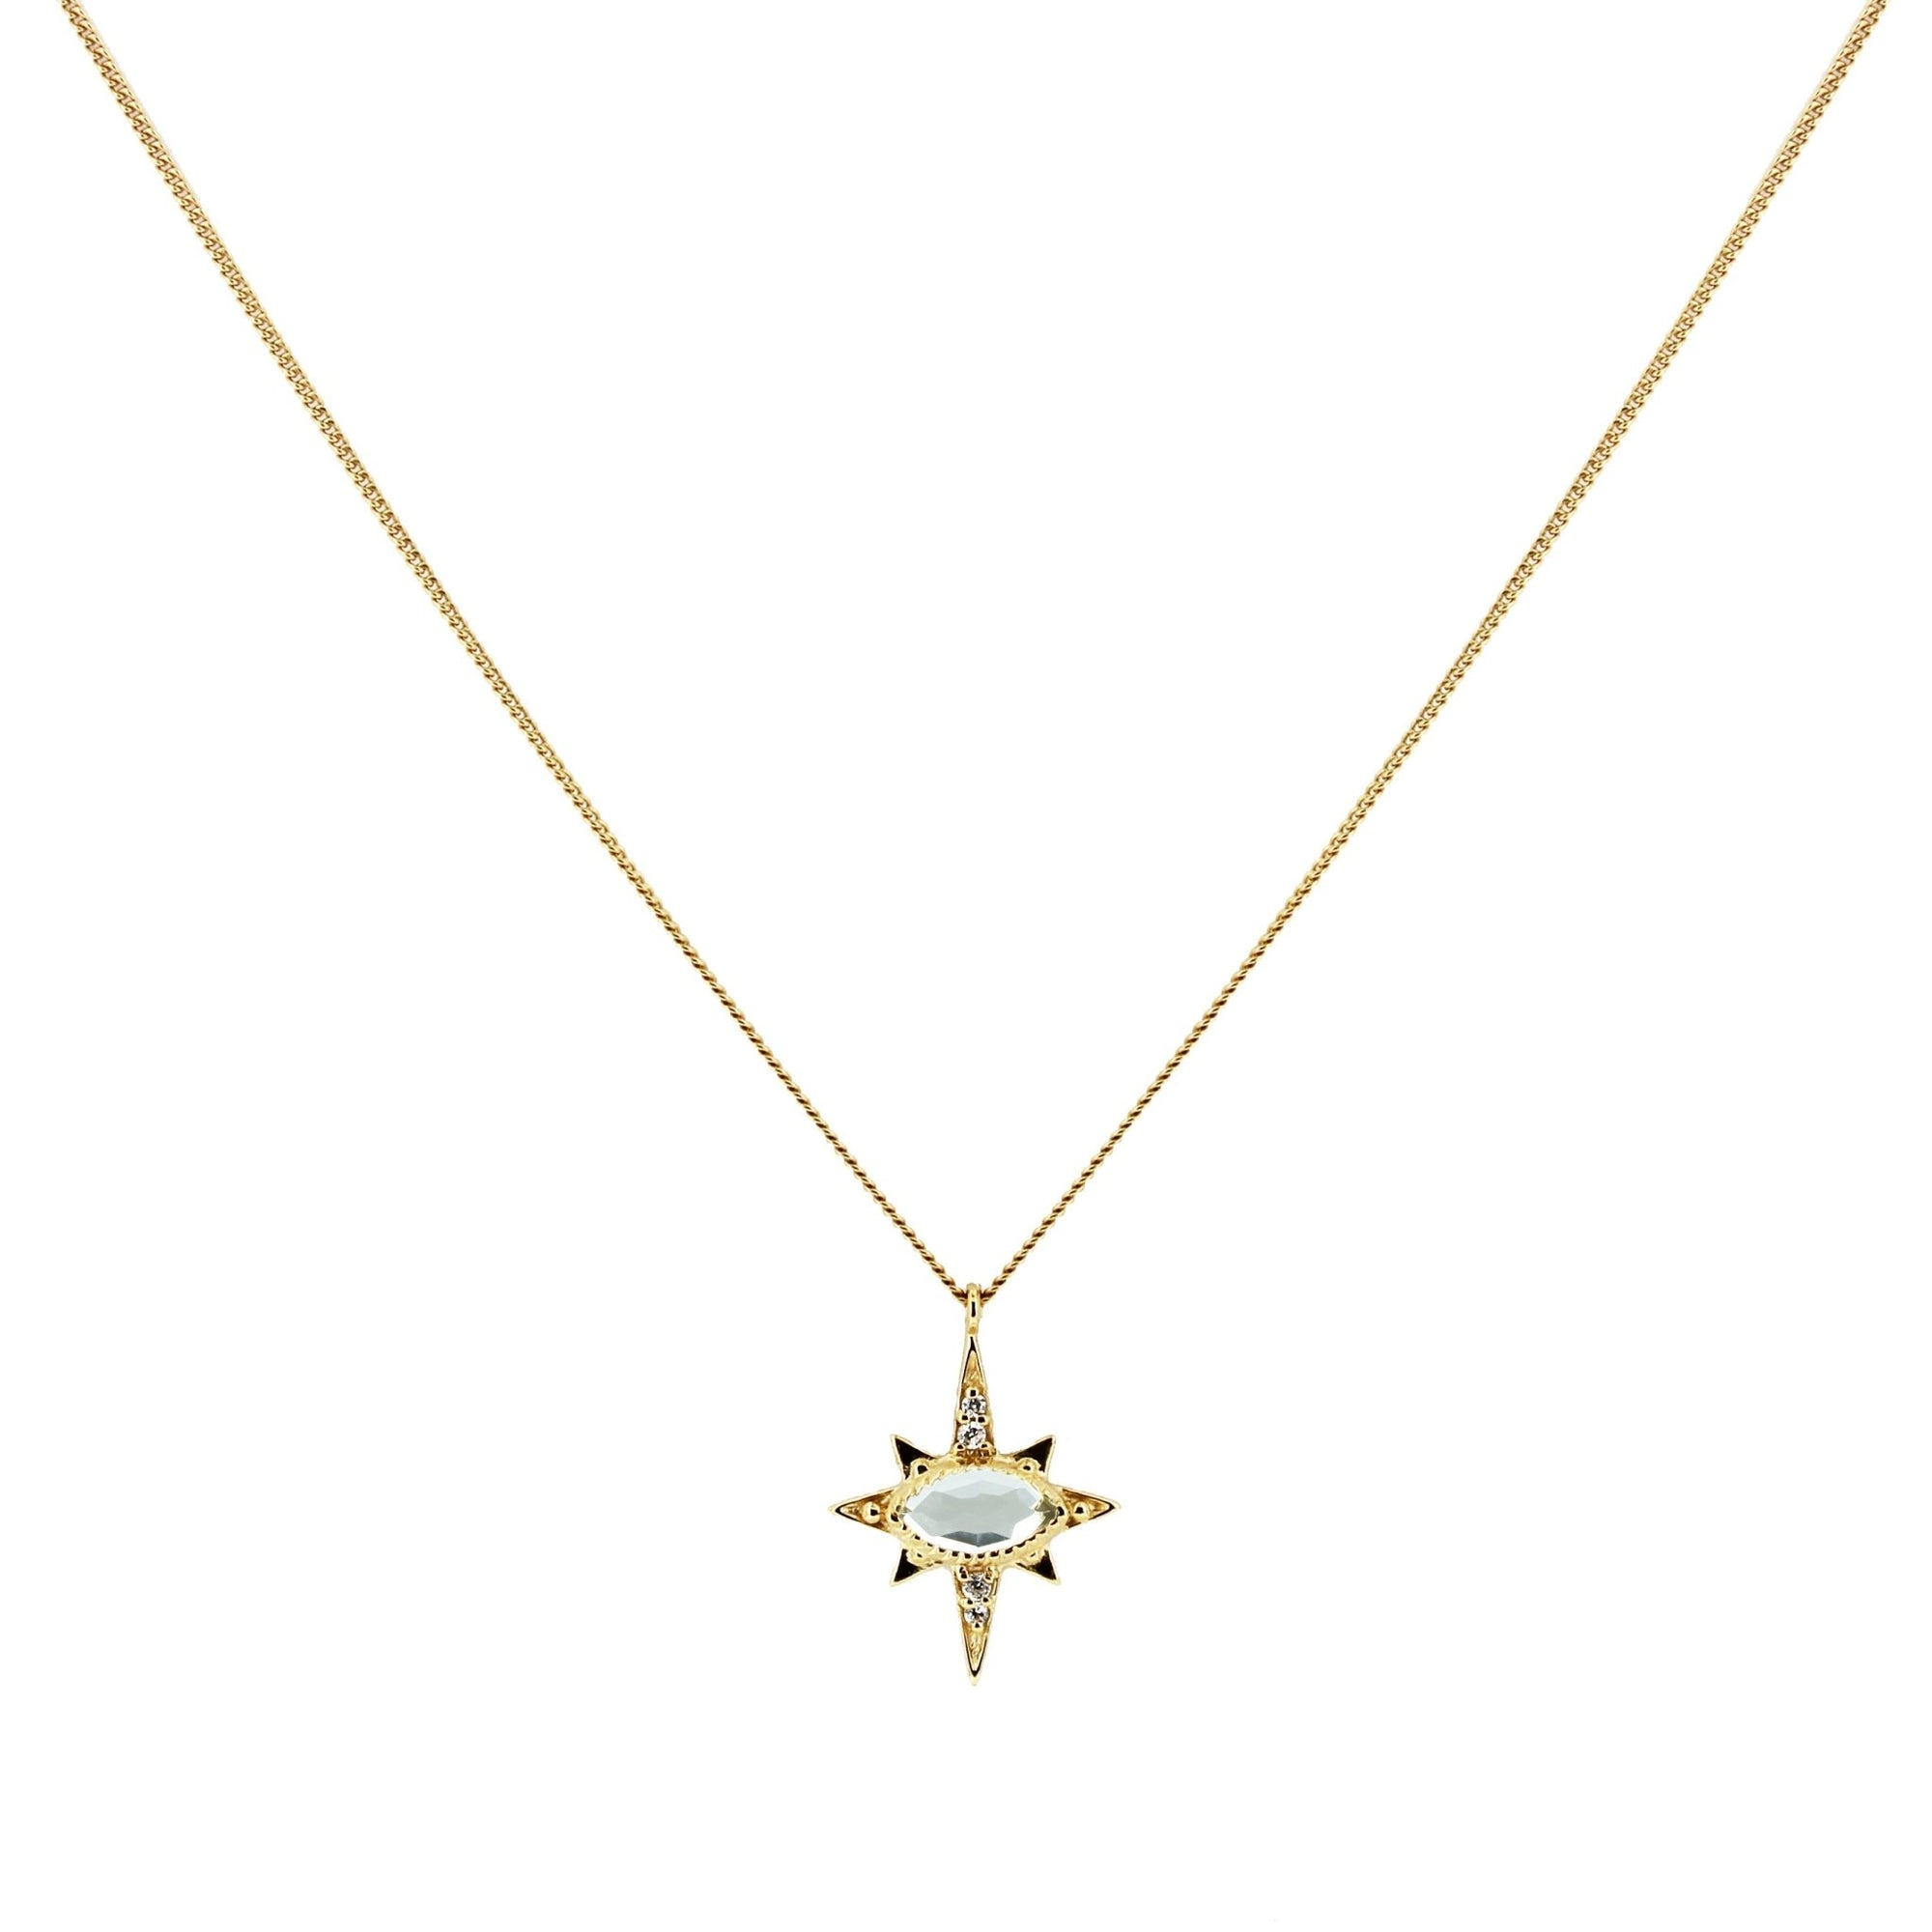 MINI IMAGINE PENDANT NECKLACE - WHITE TOPAZ, CUBIC ZIRCONIA & GOLD - SO PRETTY CARA COTTER